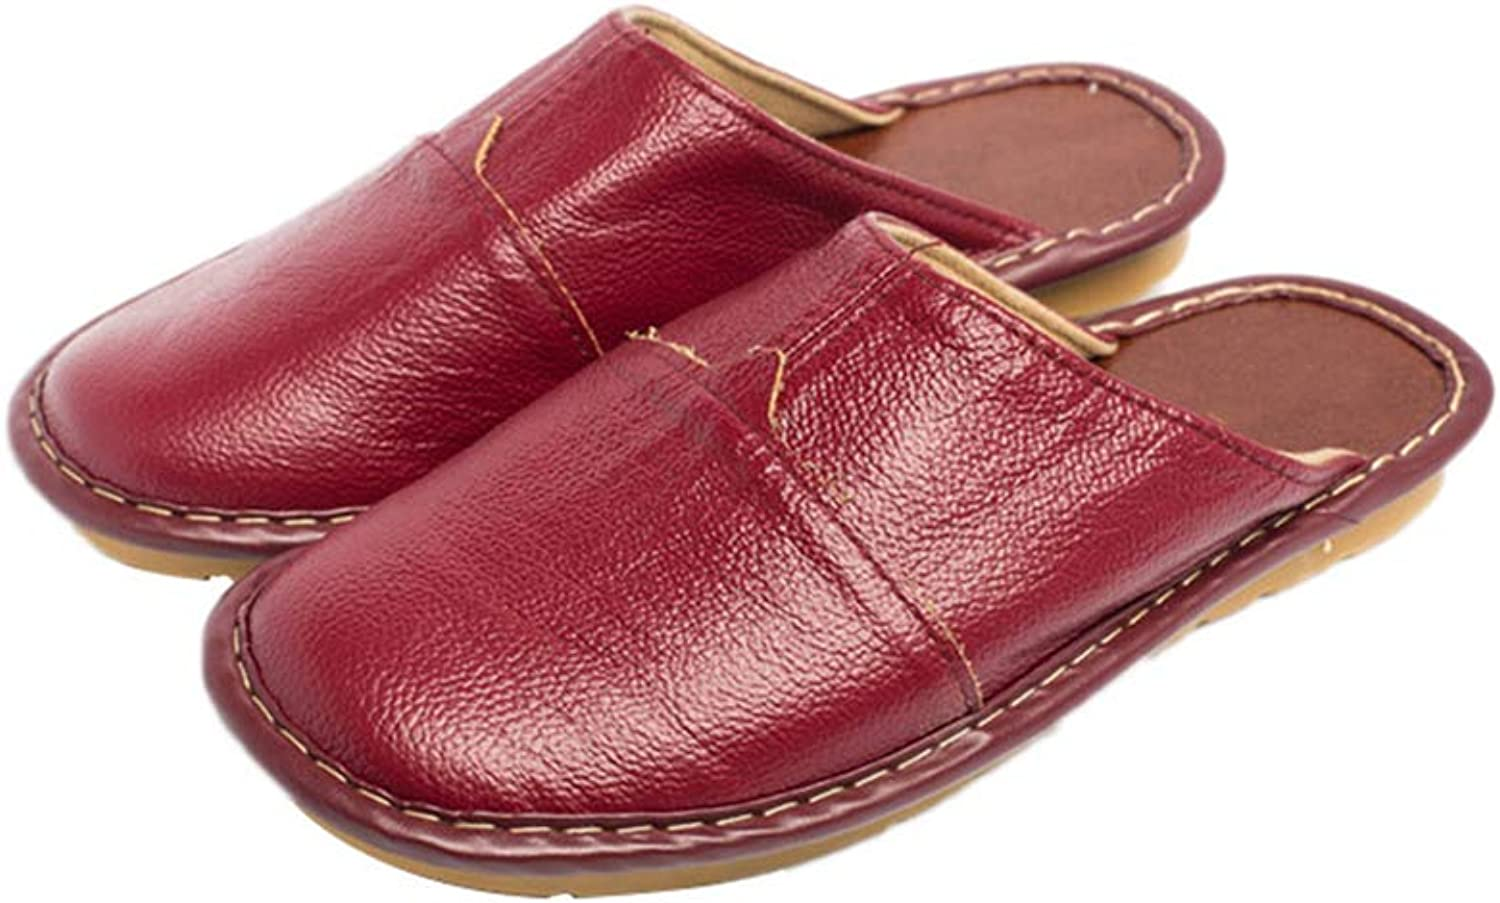 Ladies Slippers Winter Autumn Genuine Leather Home Indoor Non-Slip Thermal shoes Bedroom Casual Flats